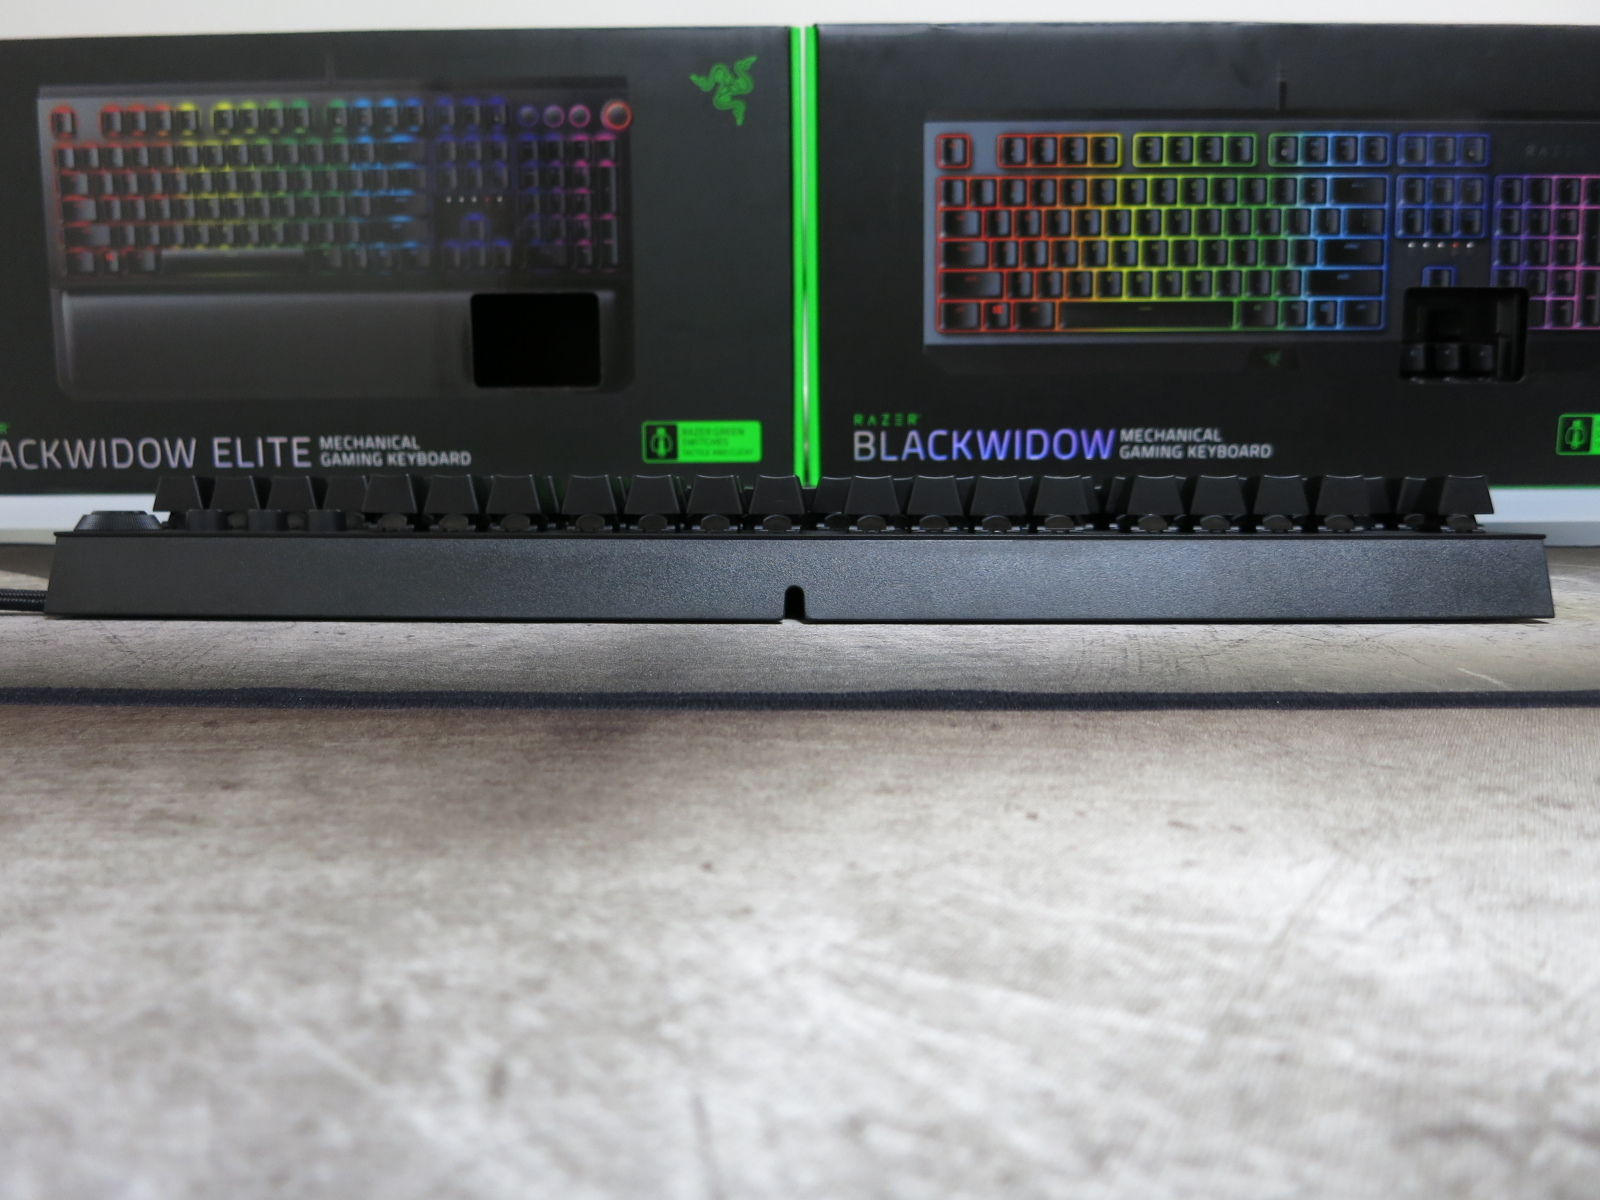 Razer_BlackWidow_Elite_Review_09.jpg